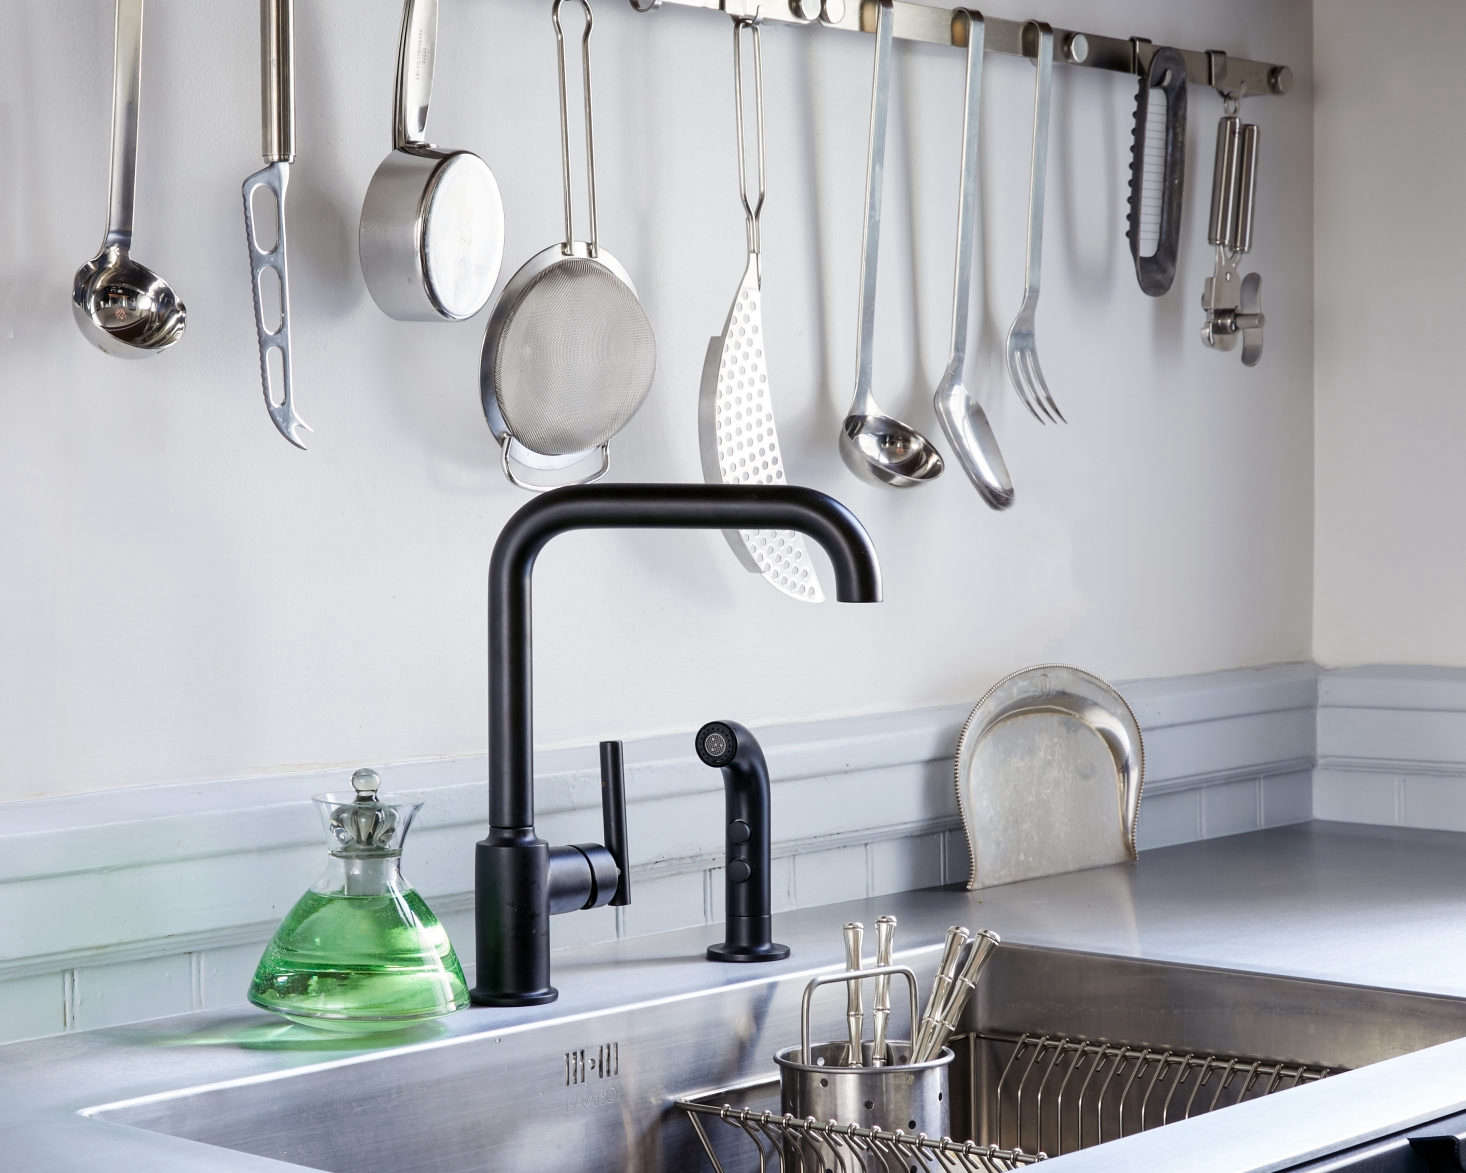 Annie reminisced about her year living abroad in France as an au pair—and was reminded of a French cleaning tool that completely mesmerized her. See Smart Buy: In Praise of the Table Crumber (Plus Five to Buy, All Under $10). Photograph by Daniel Dent for Remodelista.